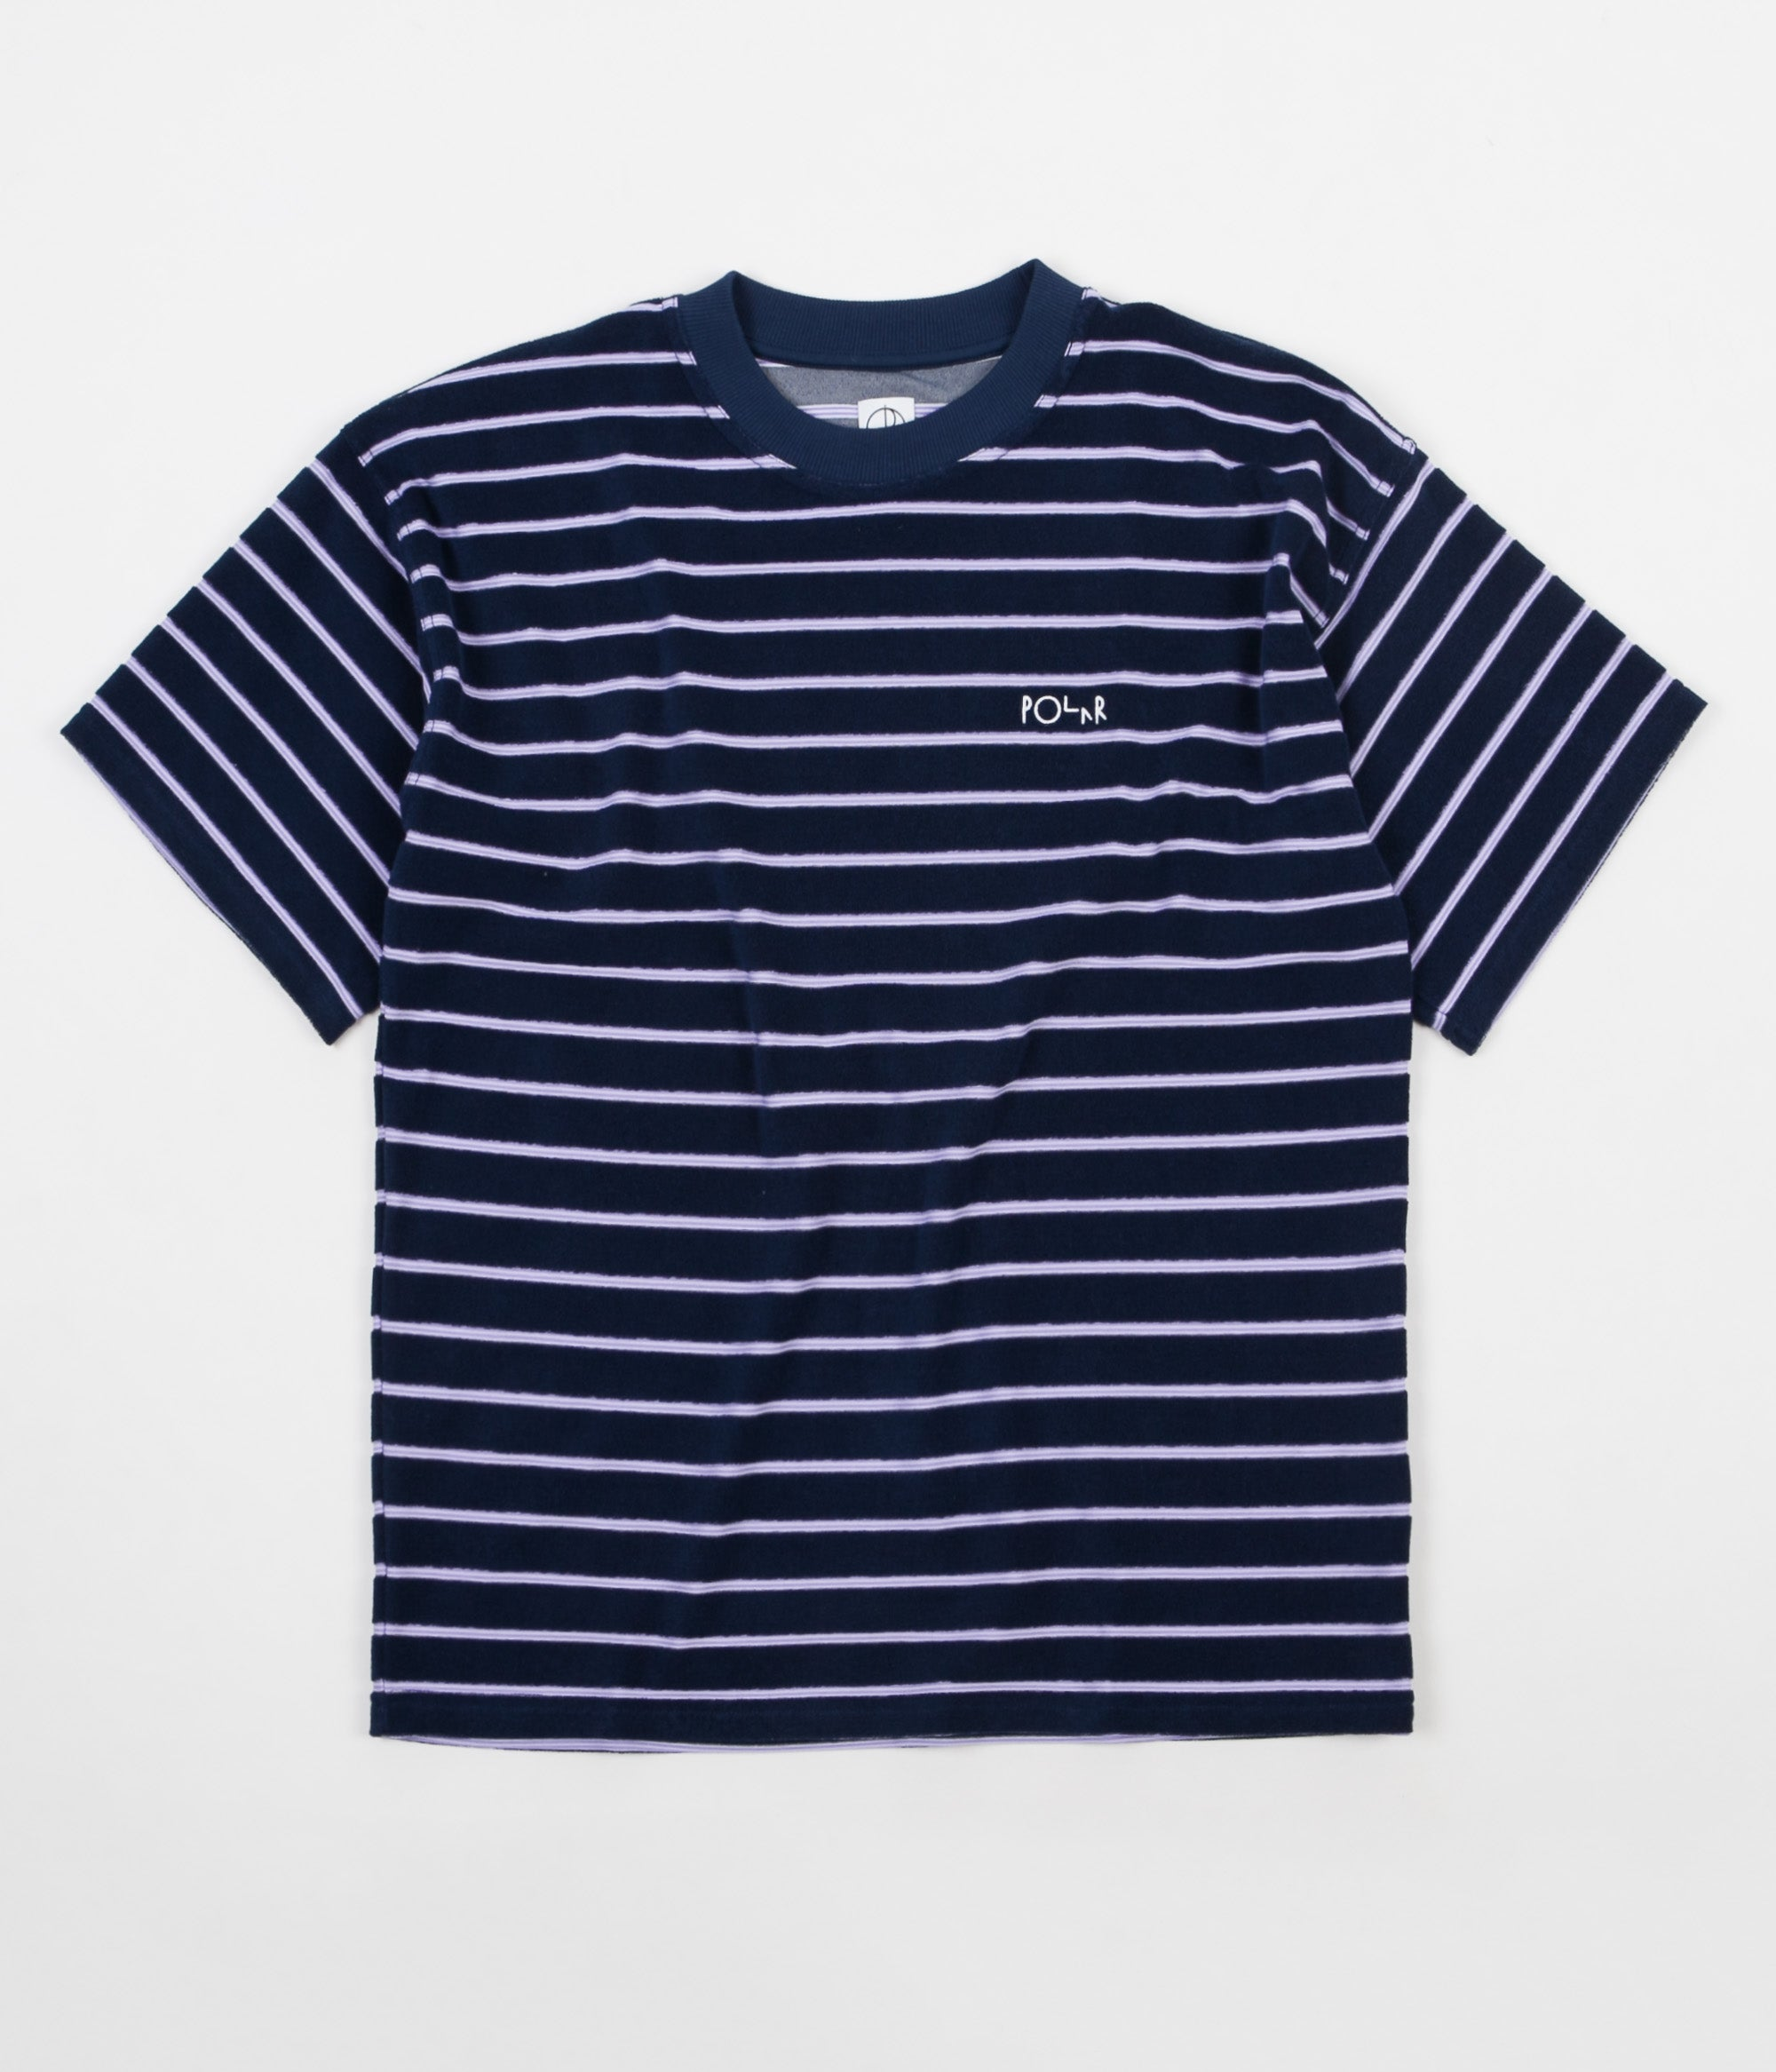 Polar Striped Terry Surf T-Shirt - Navy / Violet